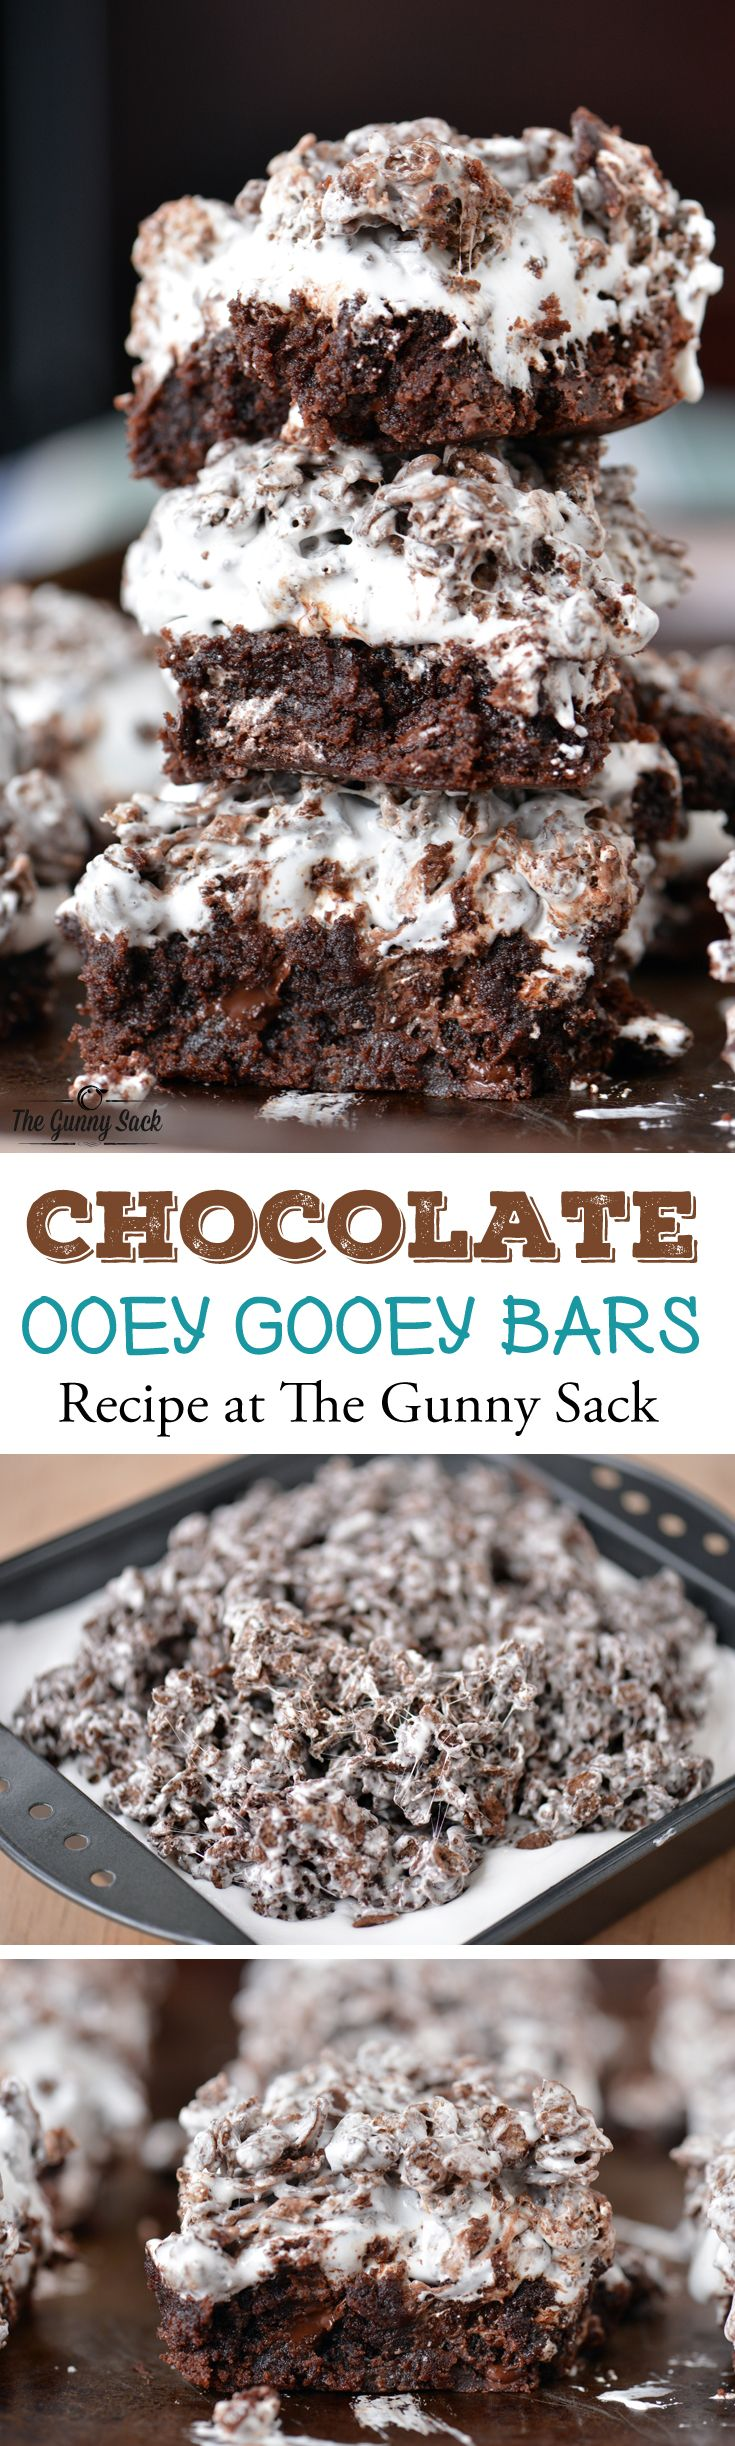 A recipe for Chocolate Ooey Gooey Bars that everyone will love...with brownies on the bottom, marshmallow cream in the middle and Cocoa Pebbles Bars on top.